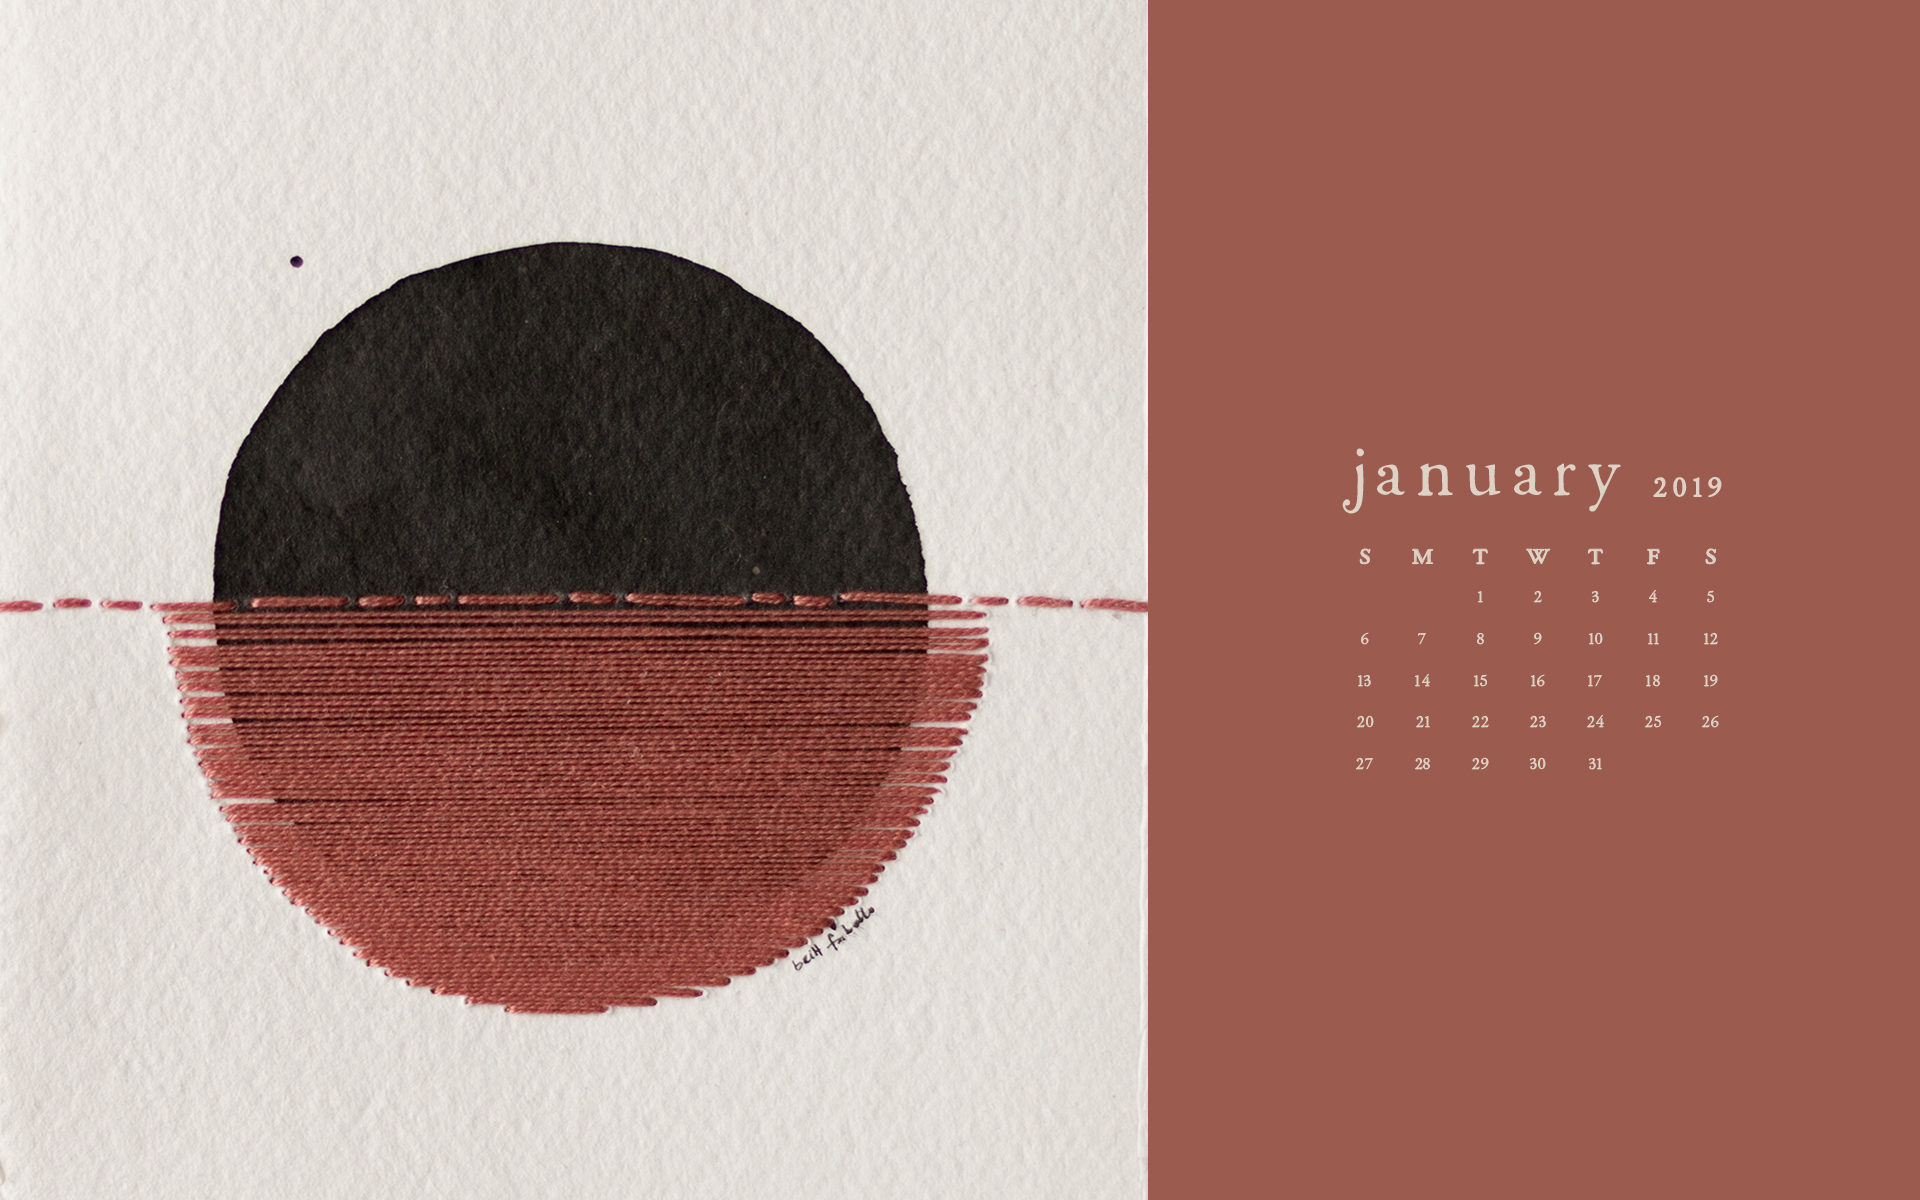 Wallpaper: January 2019 Calendar & Artwork | Computer & Phone | Britt Fabello